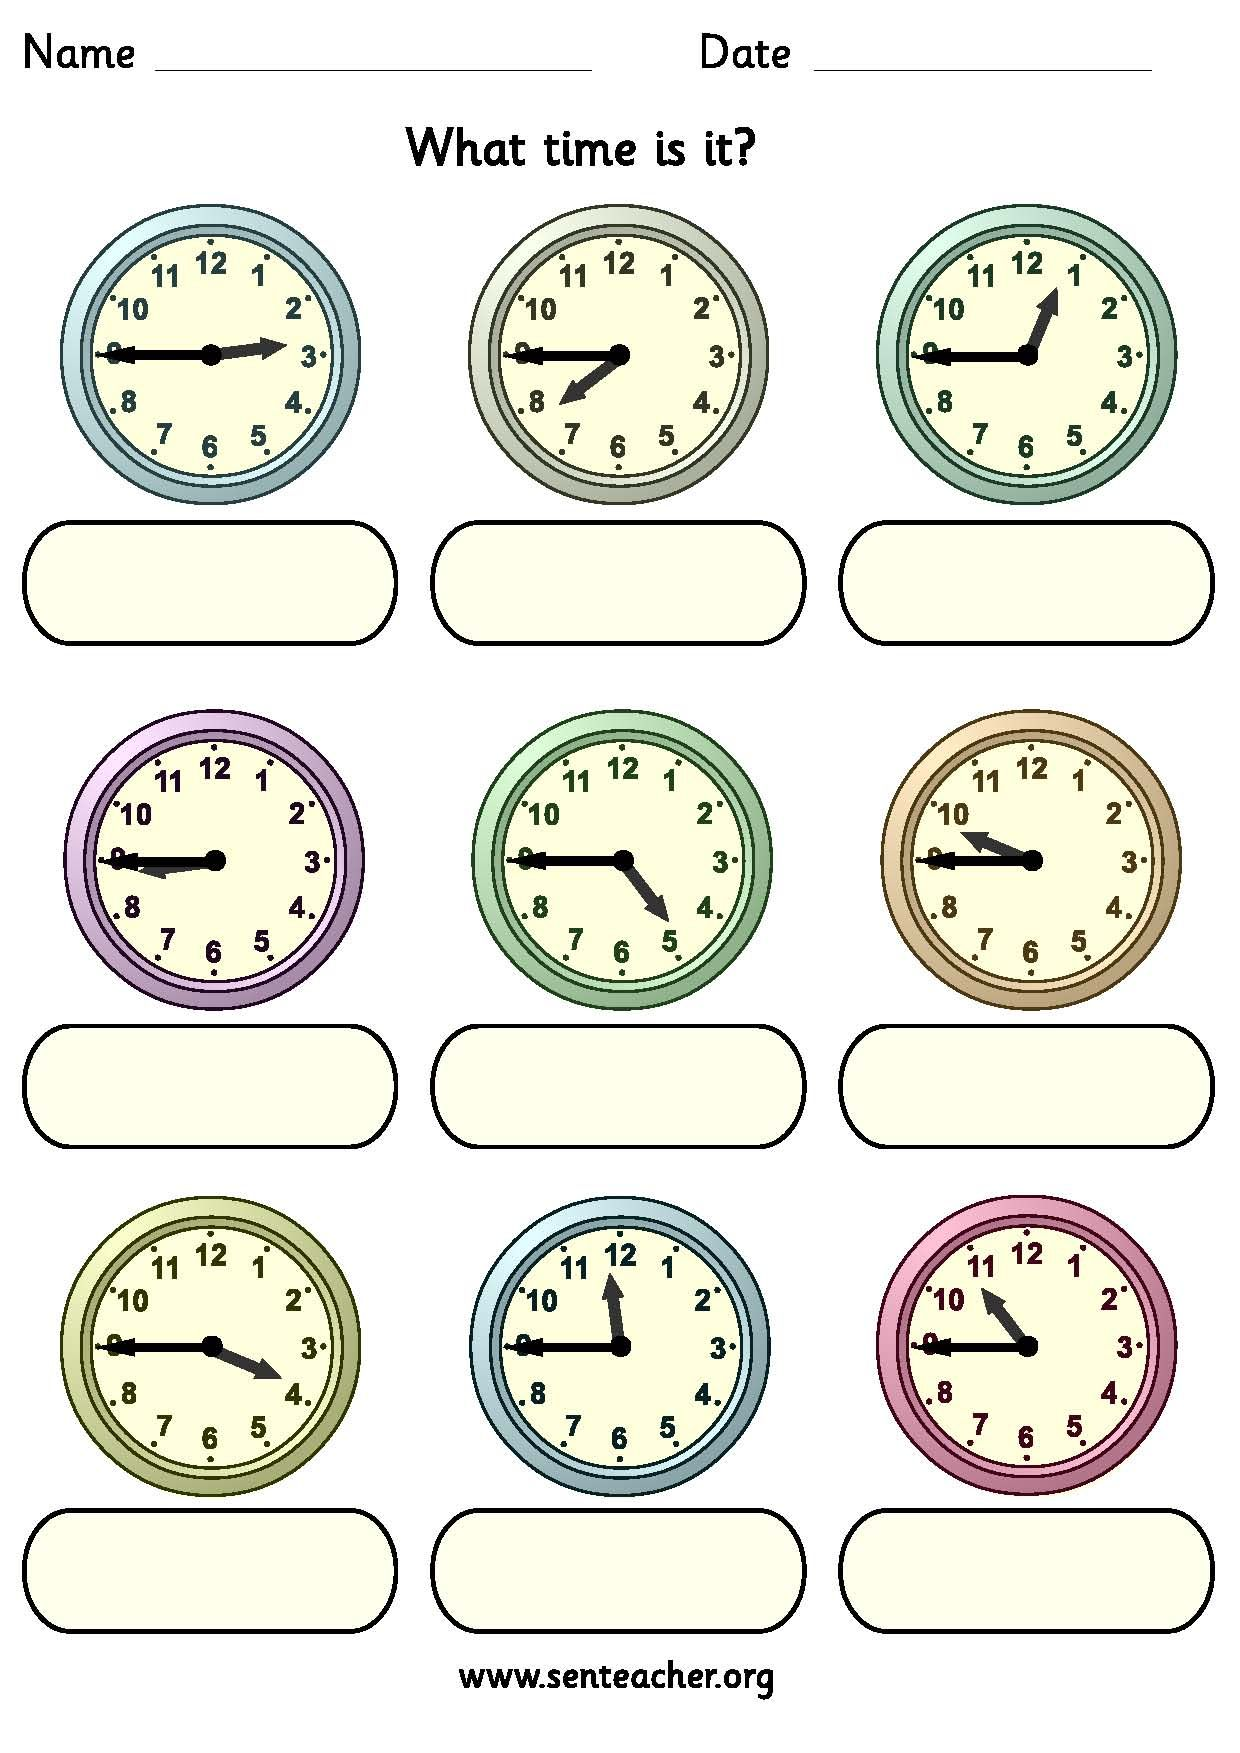 Worksheet Containing 9ogue Clocks Showing Quarter To Times With Space To Write In The